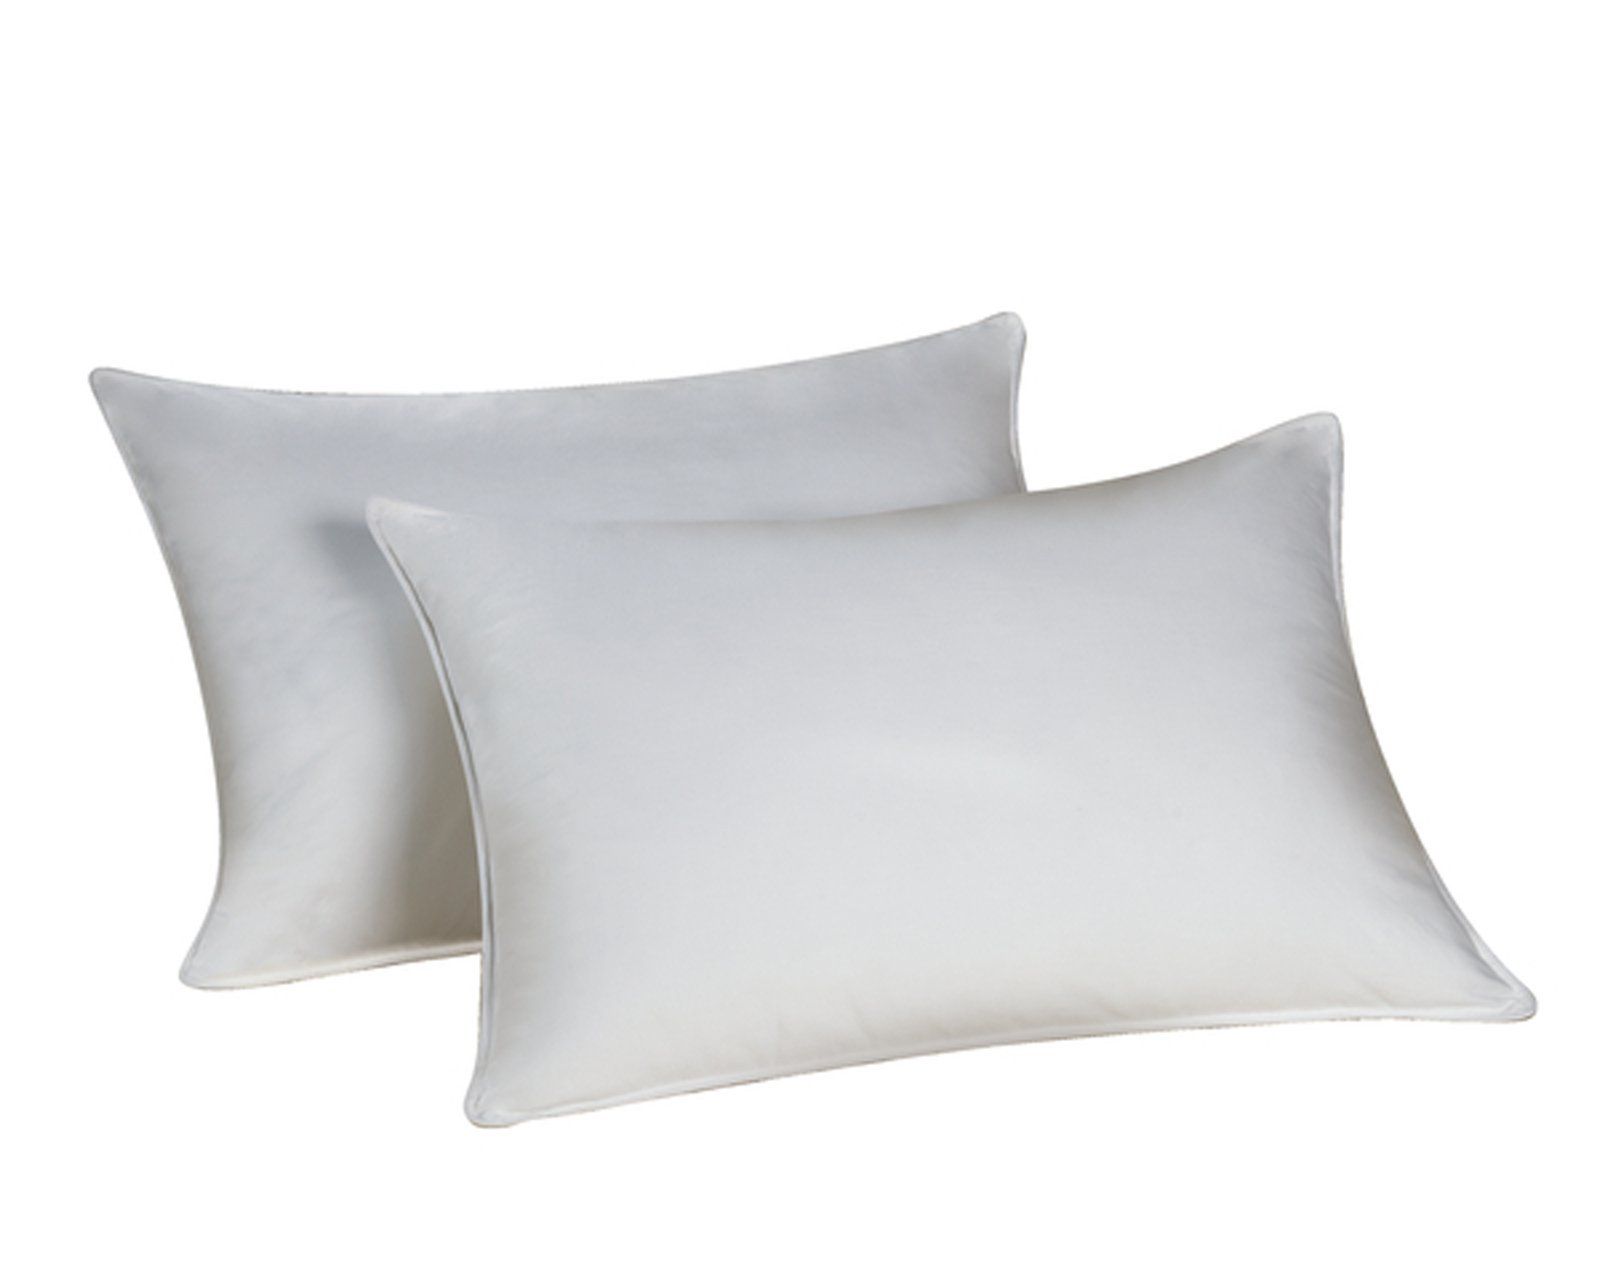 hollander sleep products eco smart clearfresh king pillow found at aloft hotels